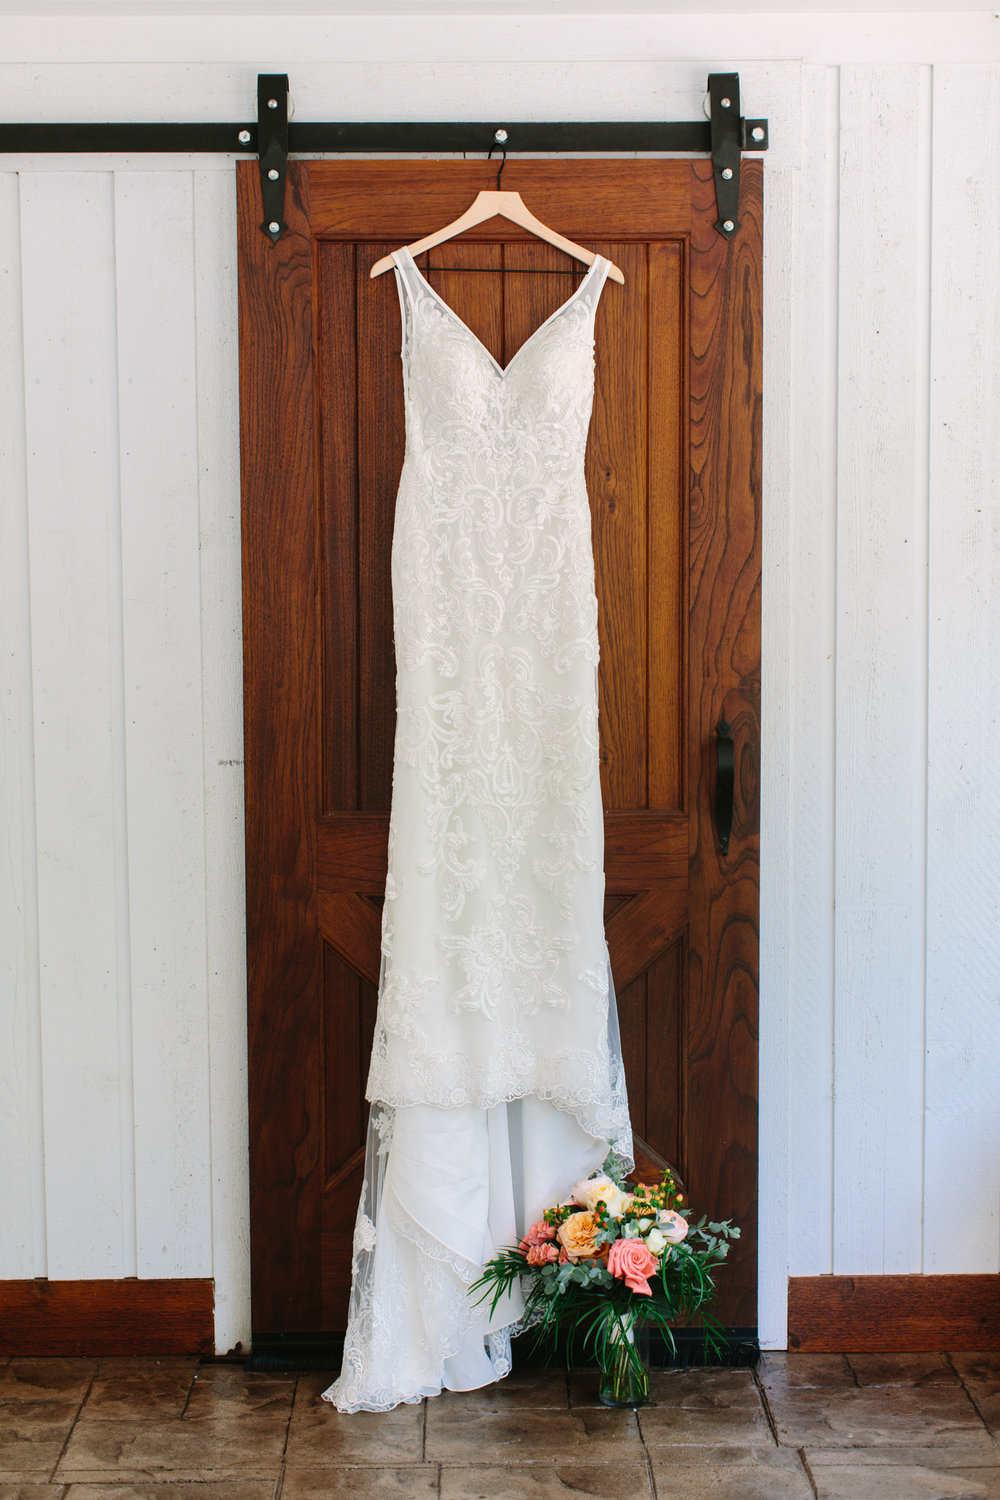 Essence of Australia Wedding Dress // Tennessee Photographer // Suzy Collins Photography // The Olde Farm